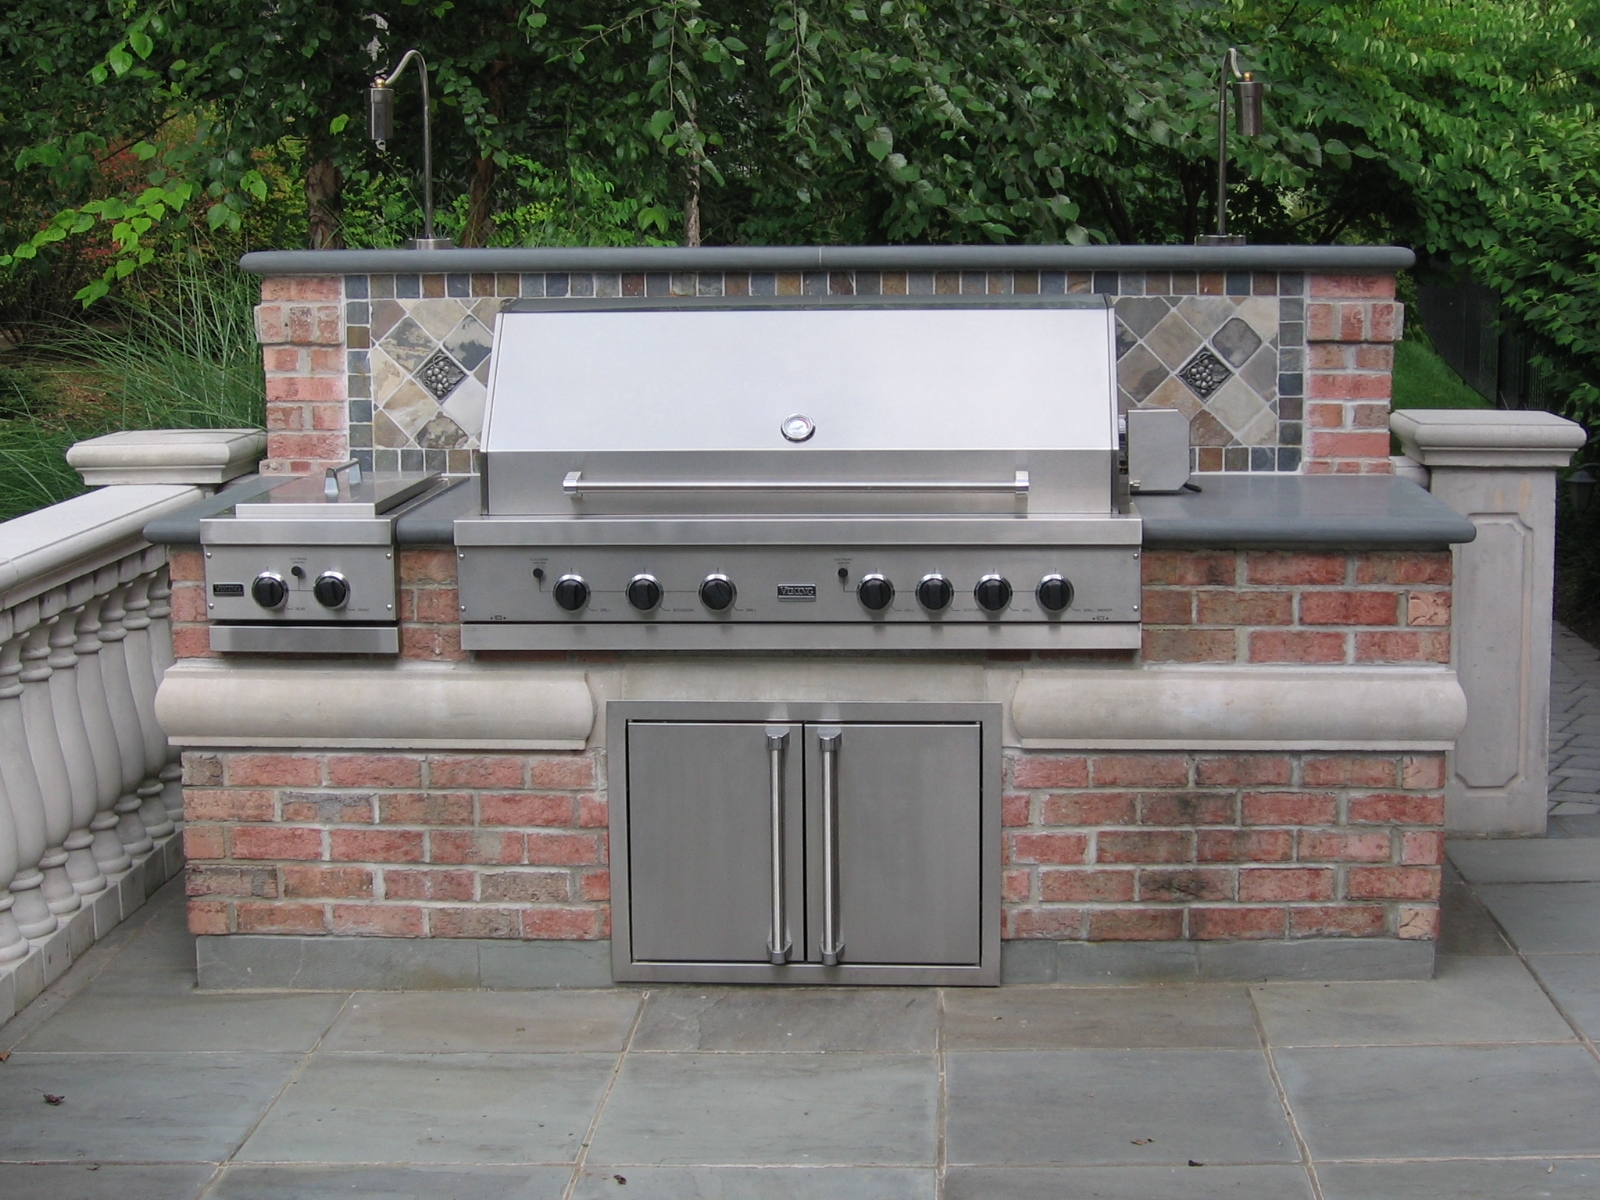 Nj landscape design company raises the bar in outdoor for Backyard barbecues outdoor kitchen